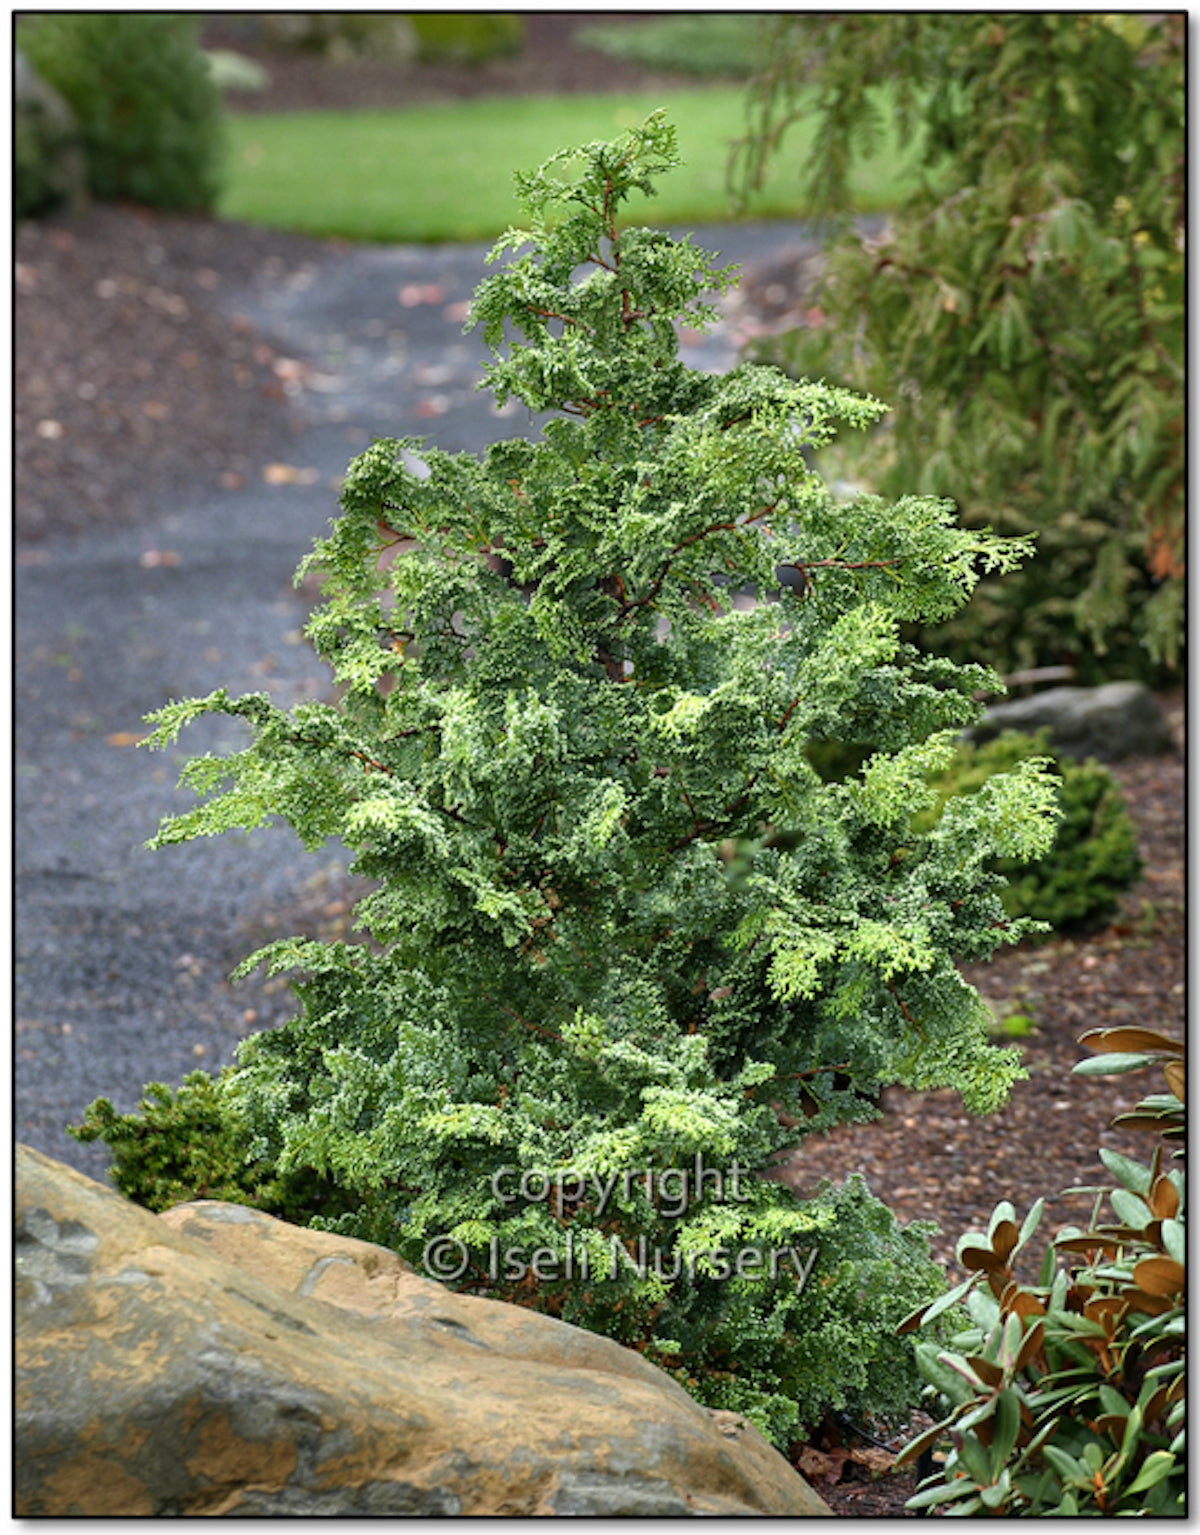 Gimborn Beauty Hinoki Cypress - Chamaecyparis obtusa 'Gimborn Beauty'